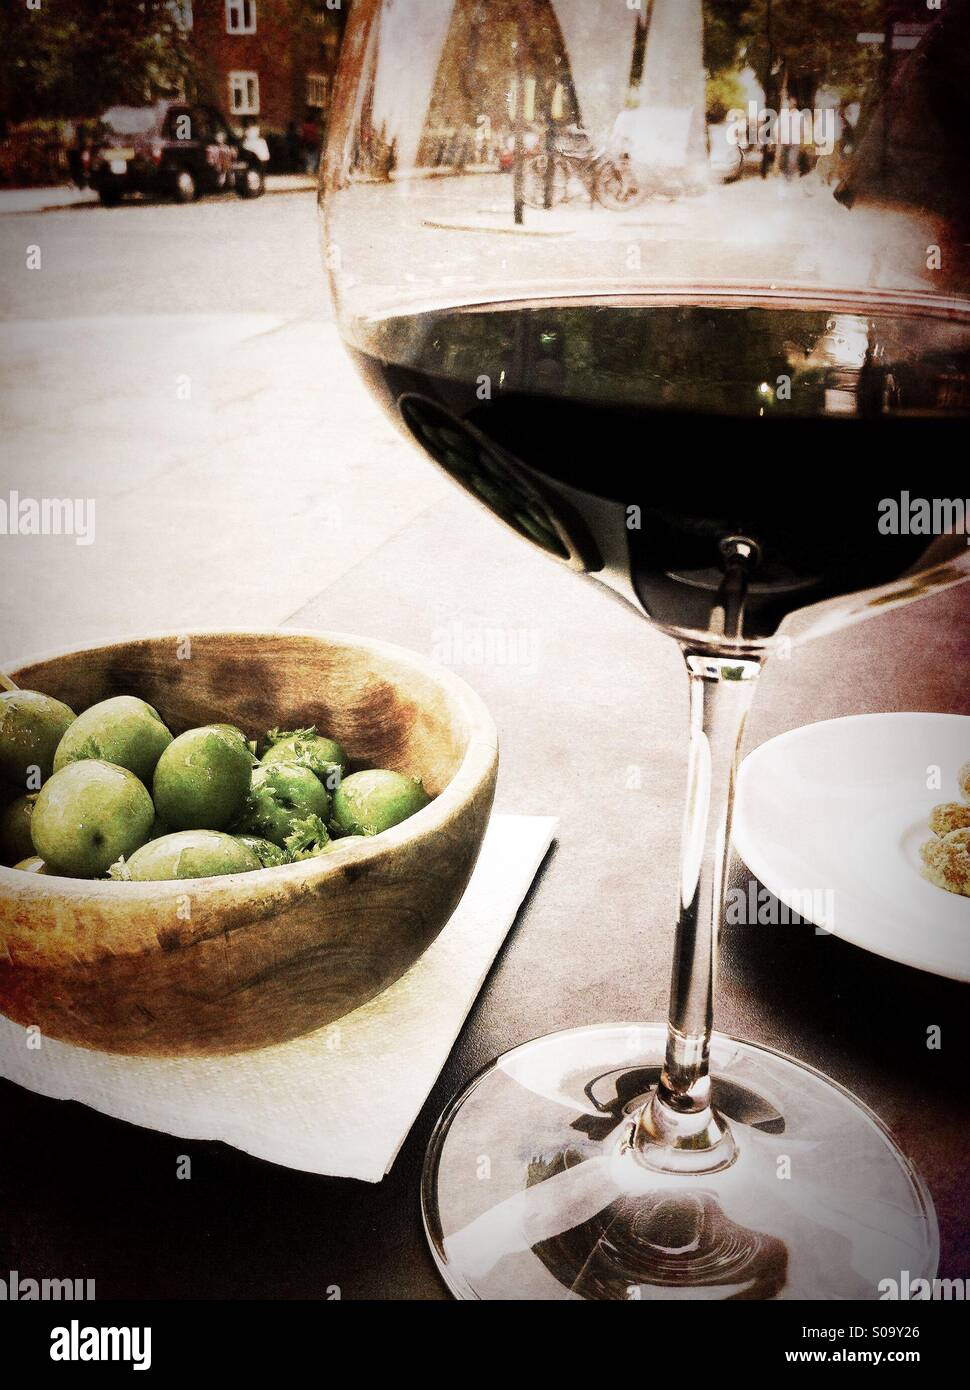 Having a glass of wine with fresh olives at Notting Hill, London - Stock Image